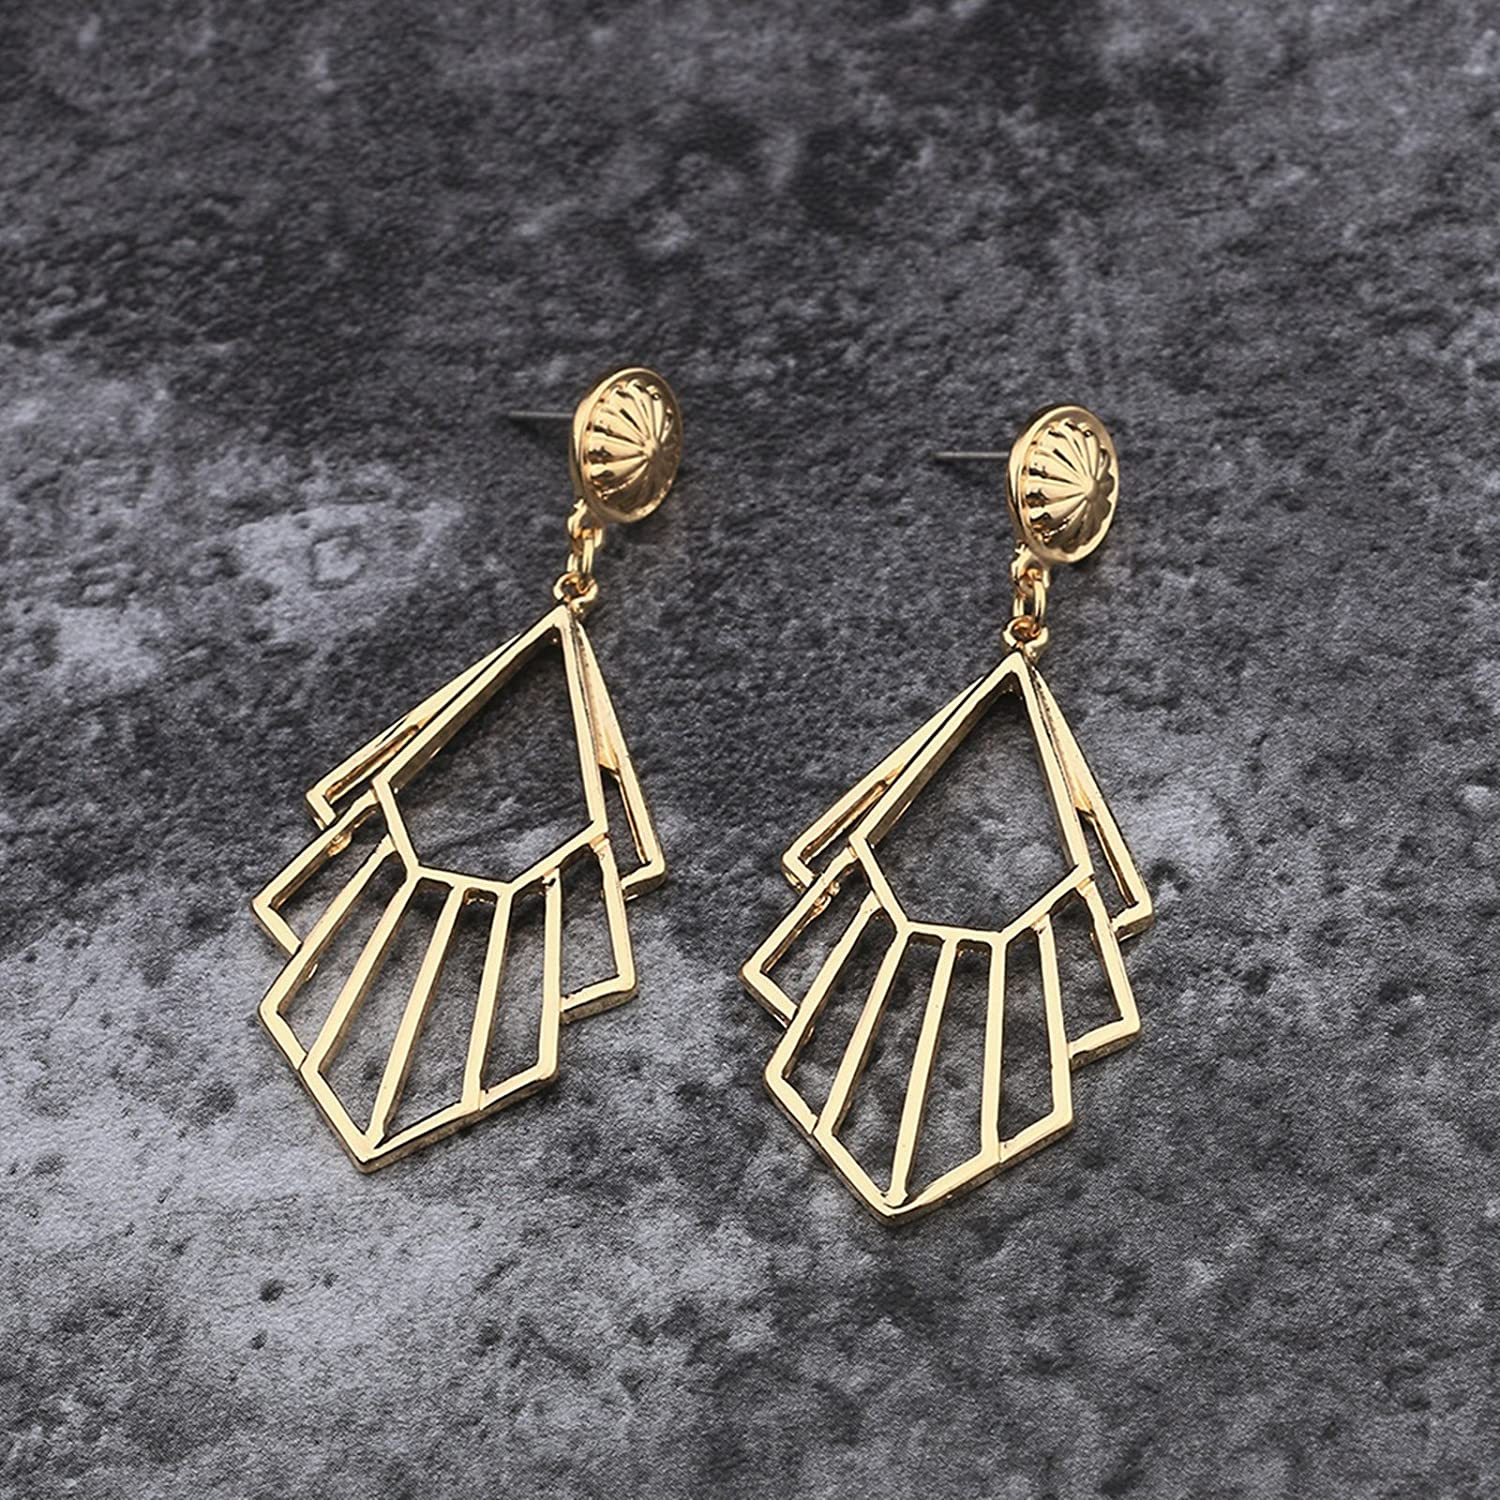 Bishilin Earrings for Women Gold Plated Hollow Geometry Wedding Party Earrings Gold